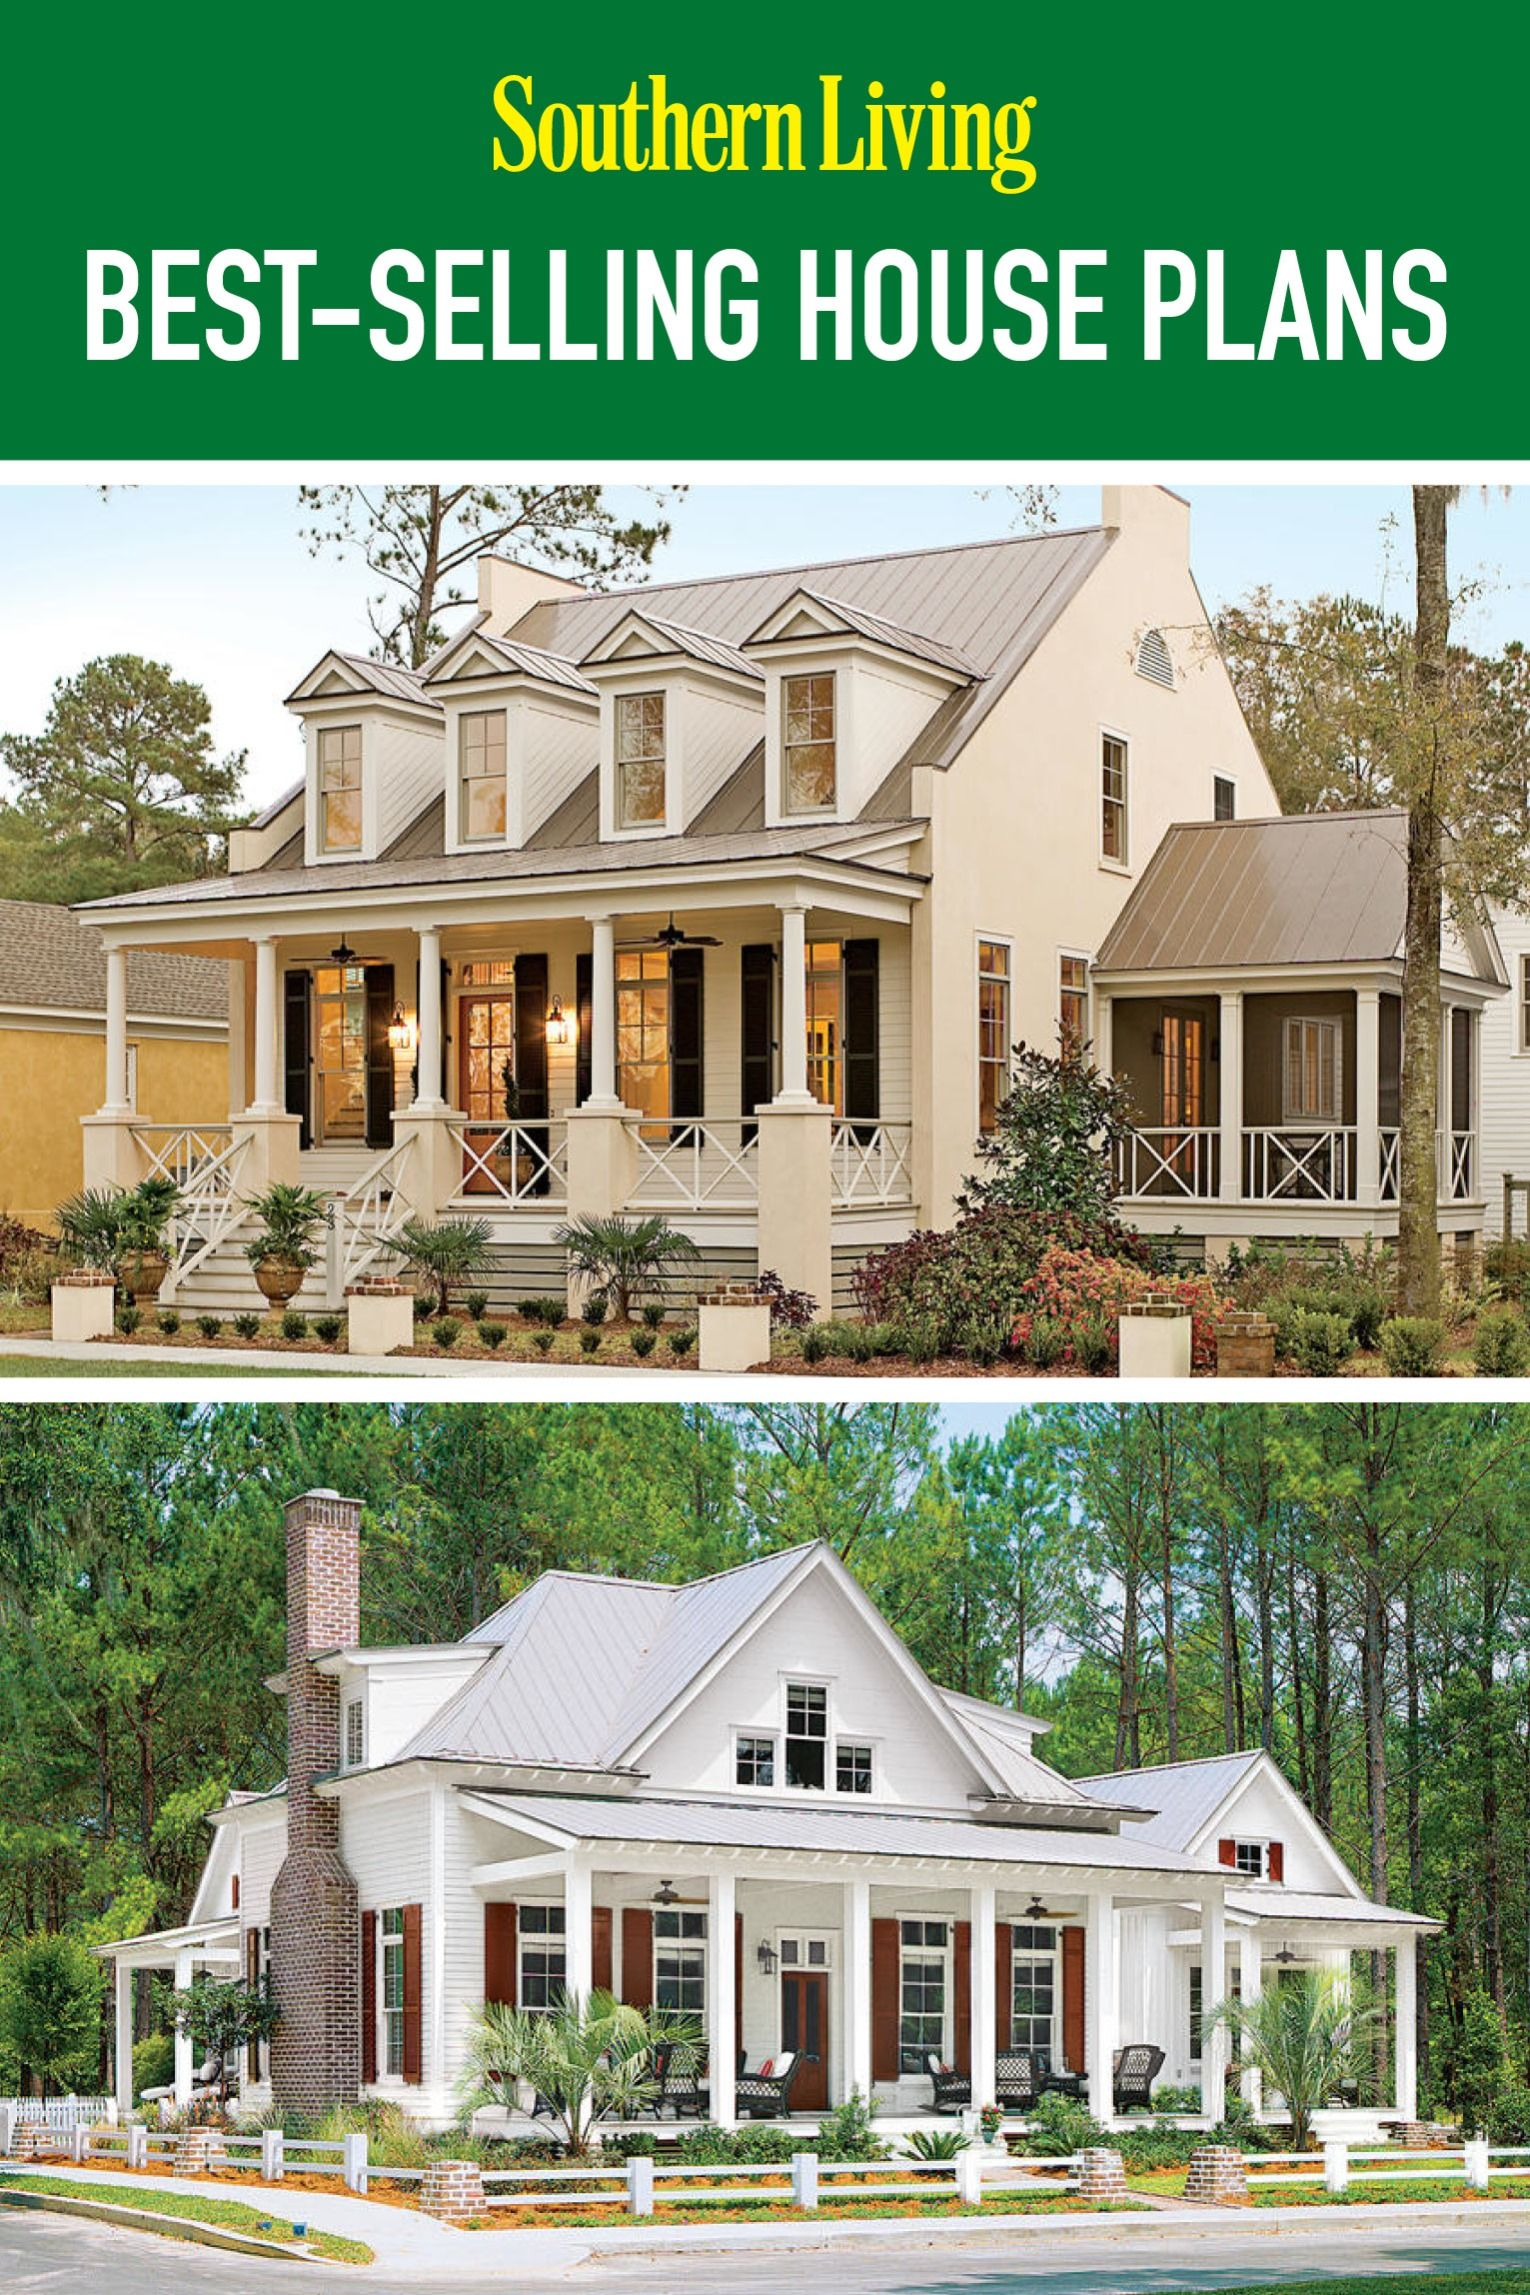 Top 12 Best Selling House Plans Southern living house plans